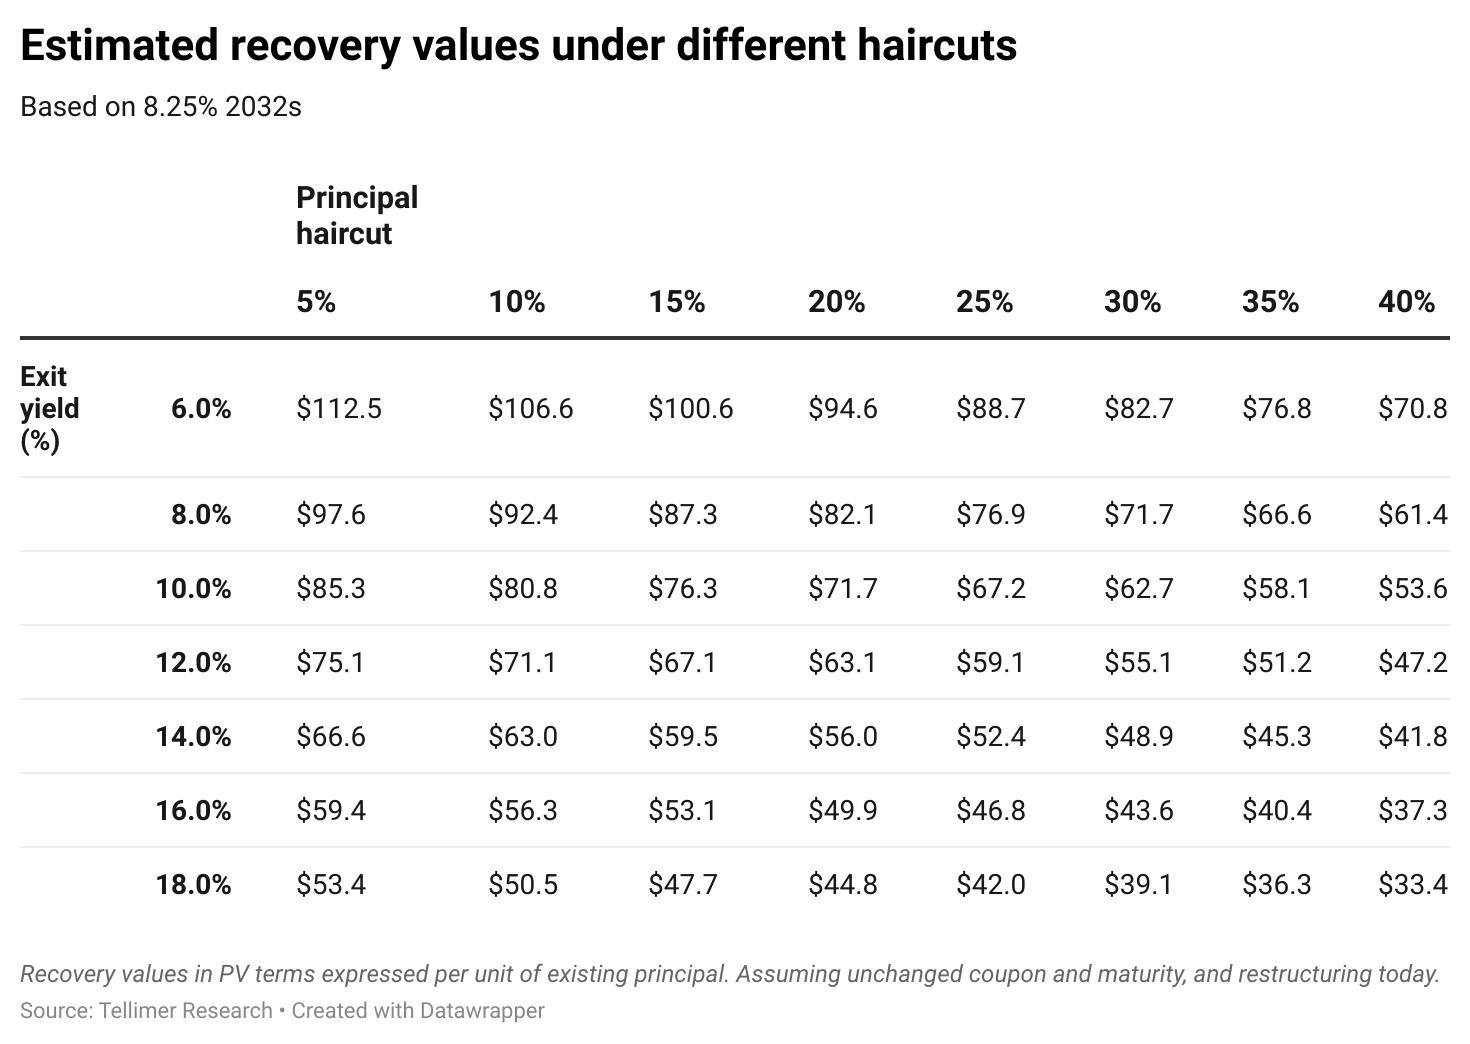 Estimated recovery values under different haircuts